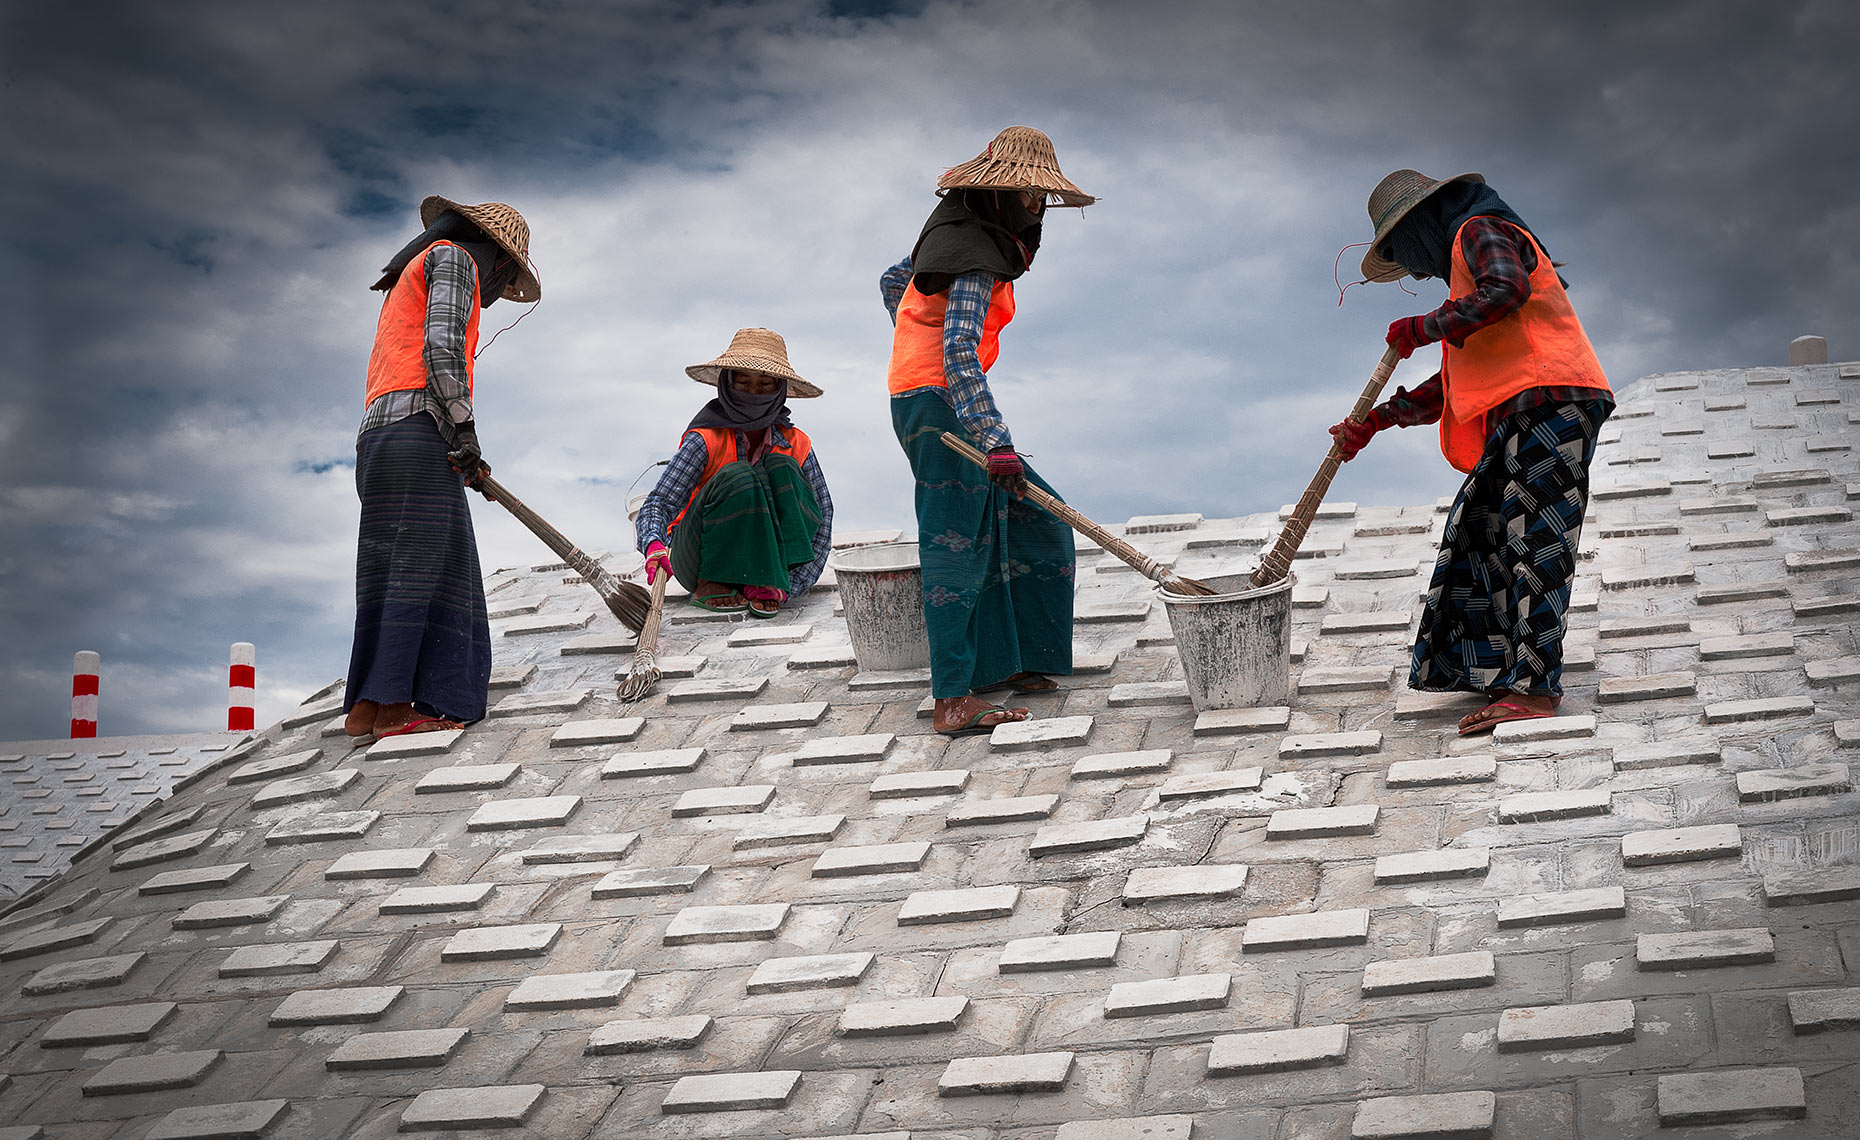 workers in Myanmar (Burma)